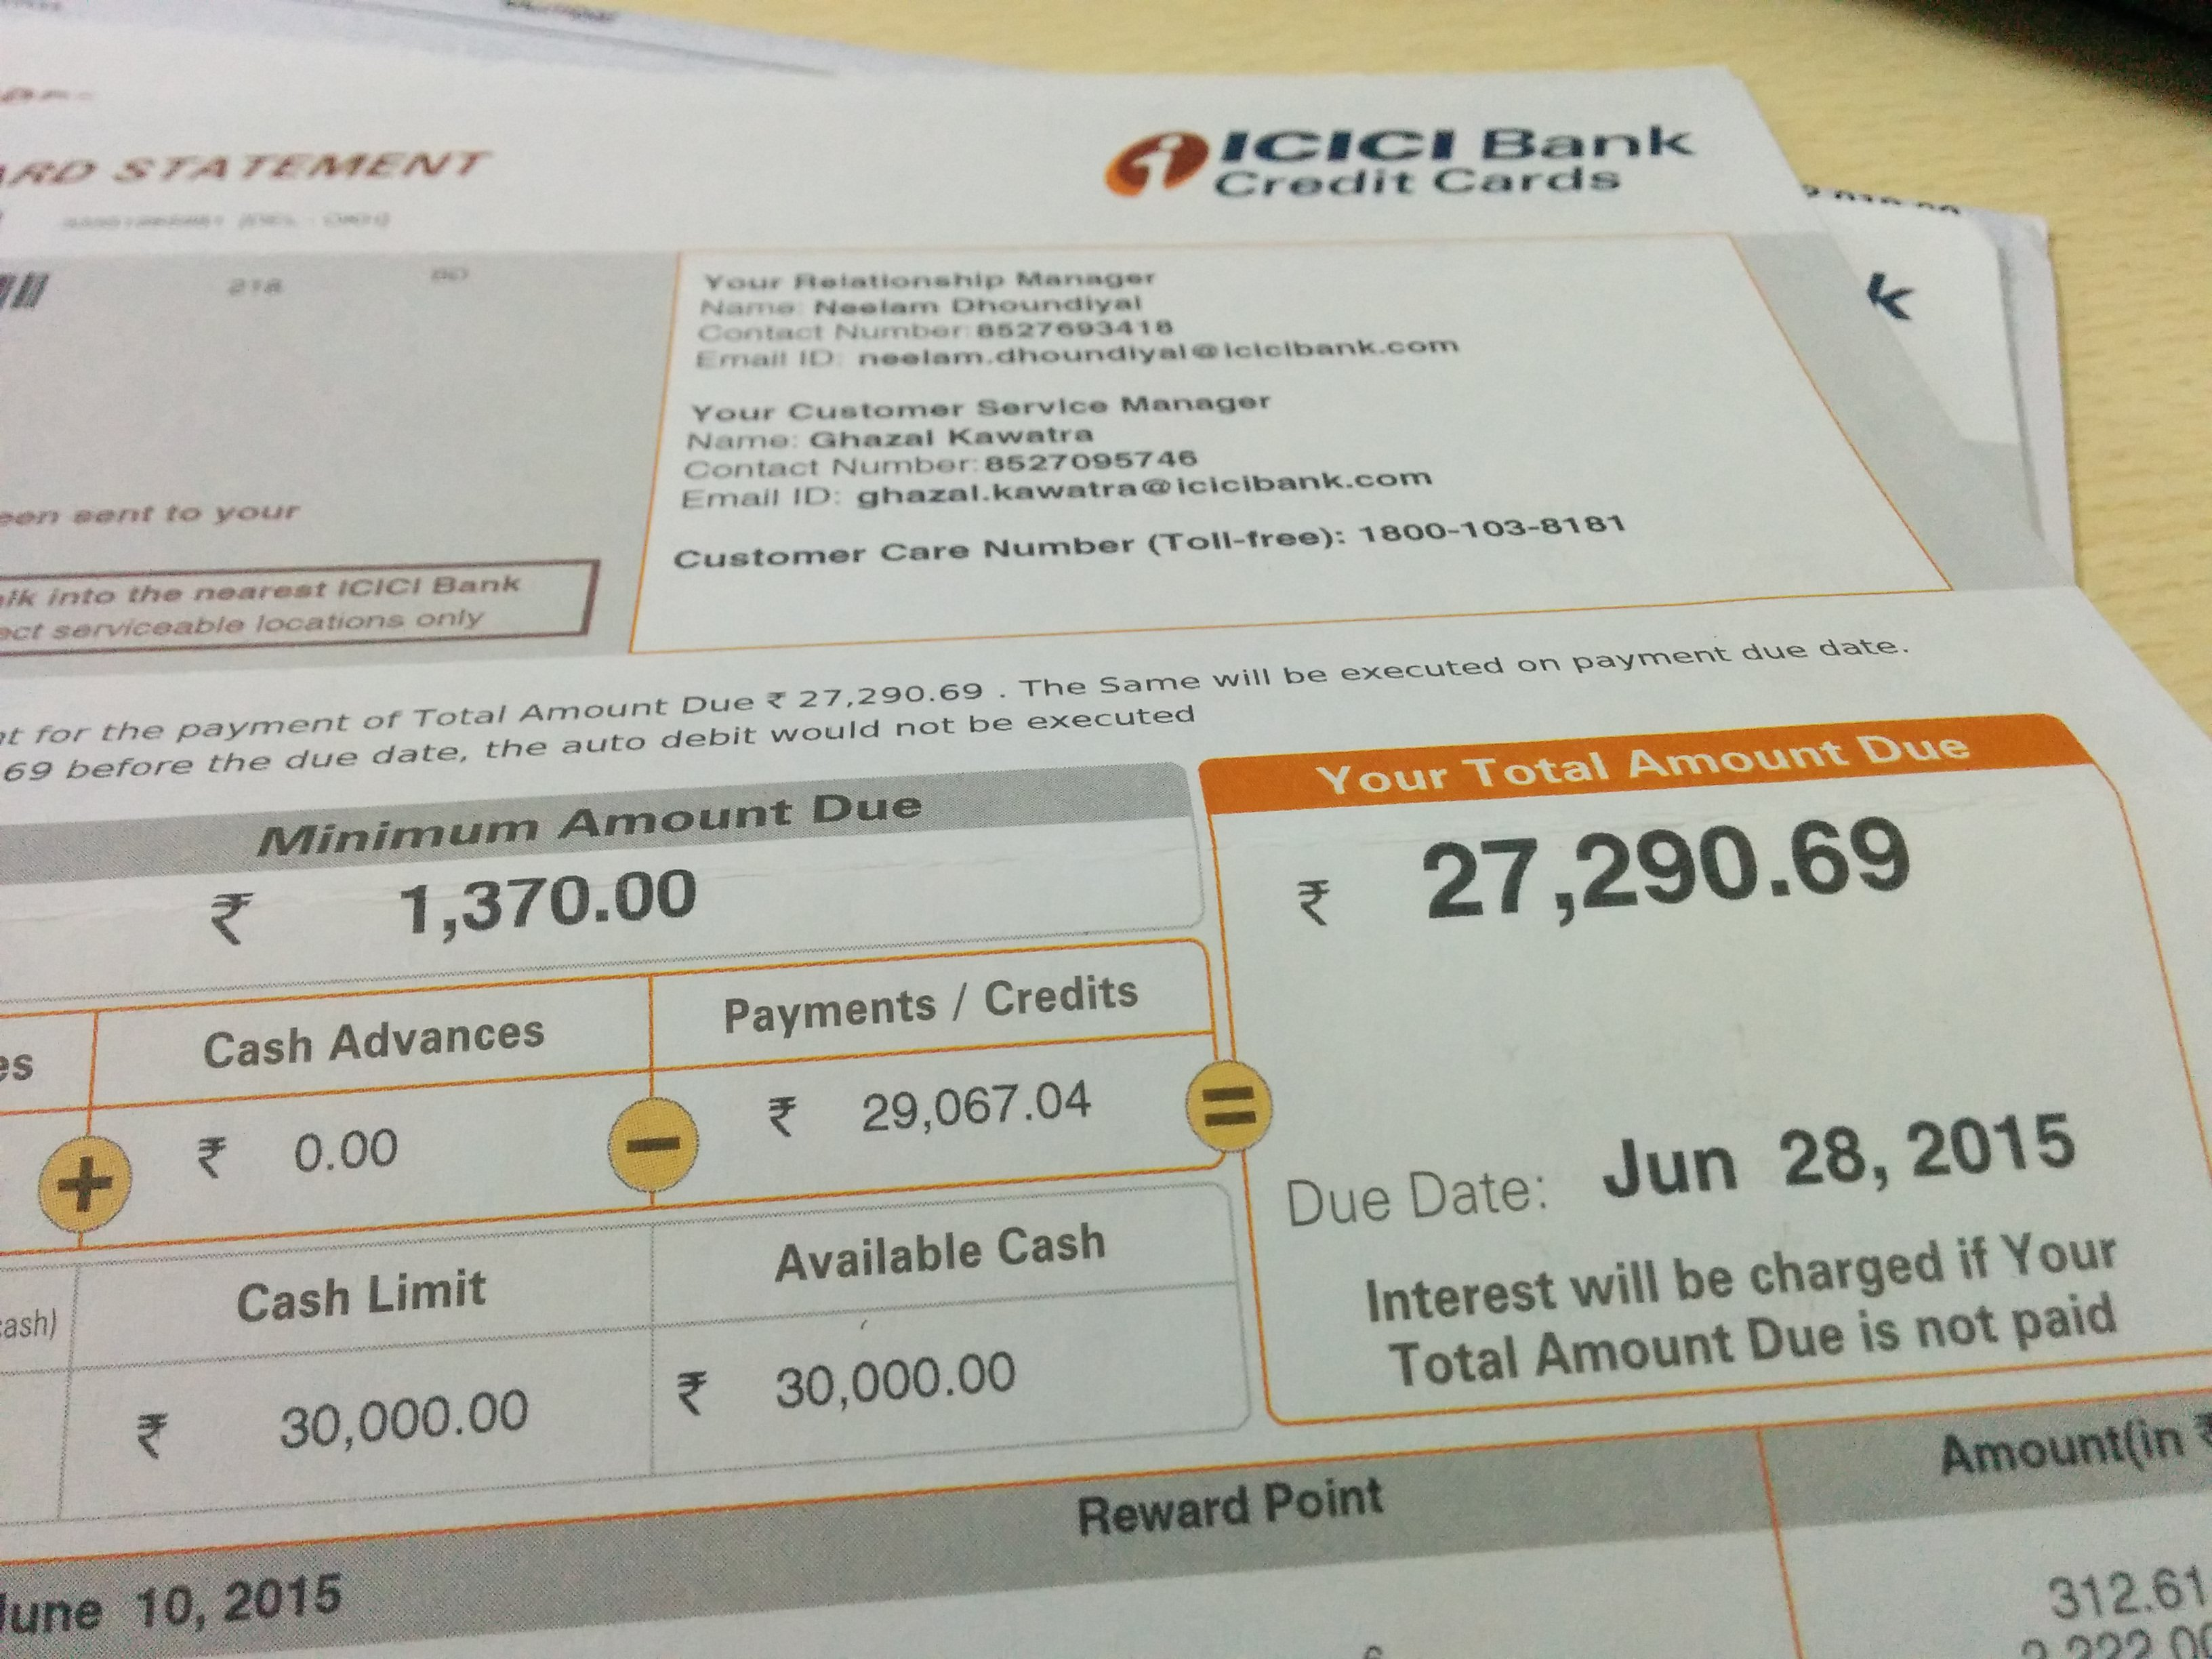 a case of misleading credit card statement